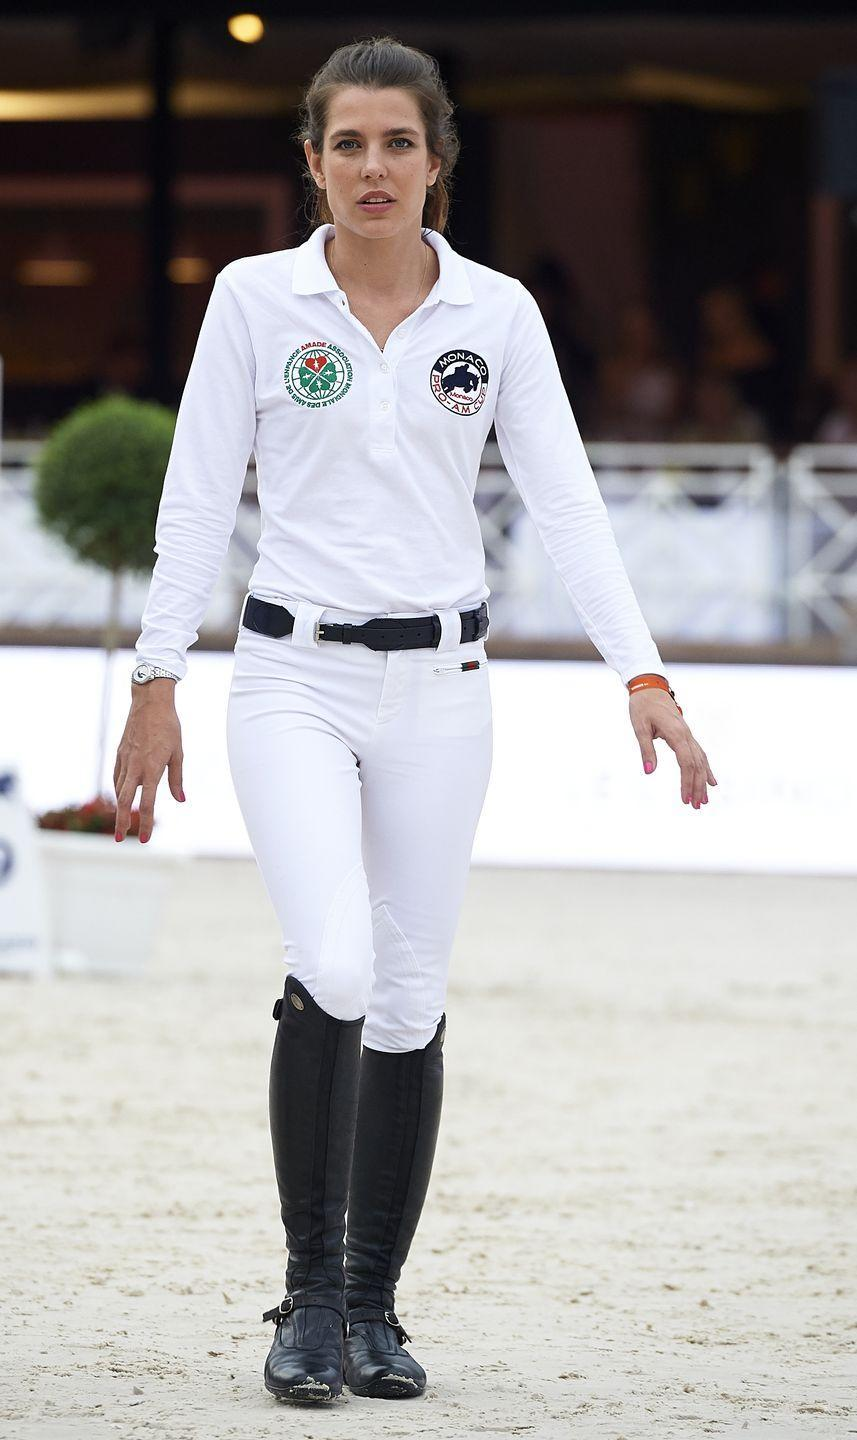 <p>An equestrian, Charlotte brings her style into the ring with sleek and elegant riding looks. The young royal often opts for all-white riding outfits, complete with Gucci and Hermès accessories. </p>